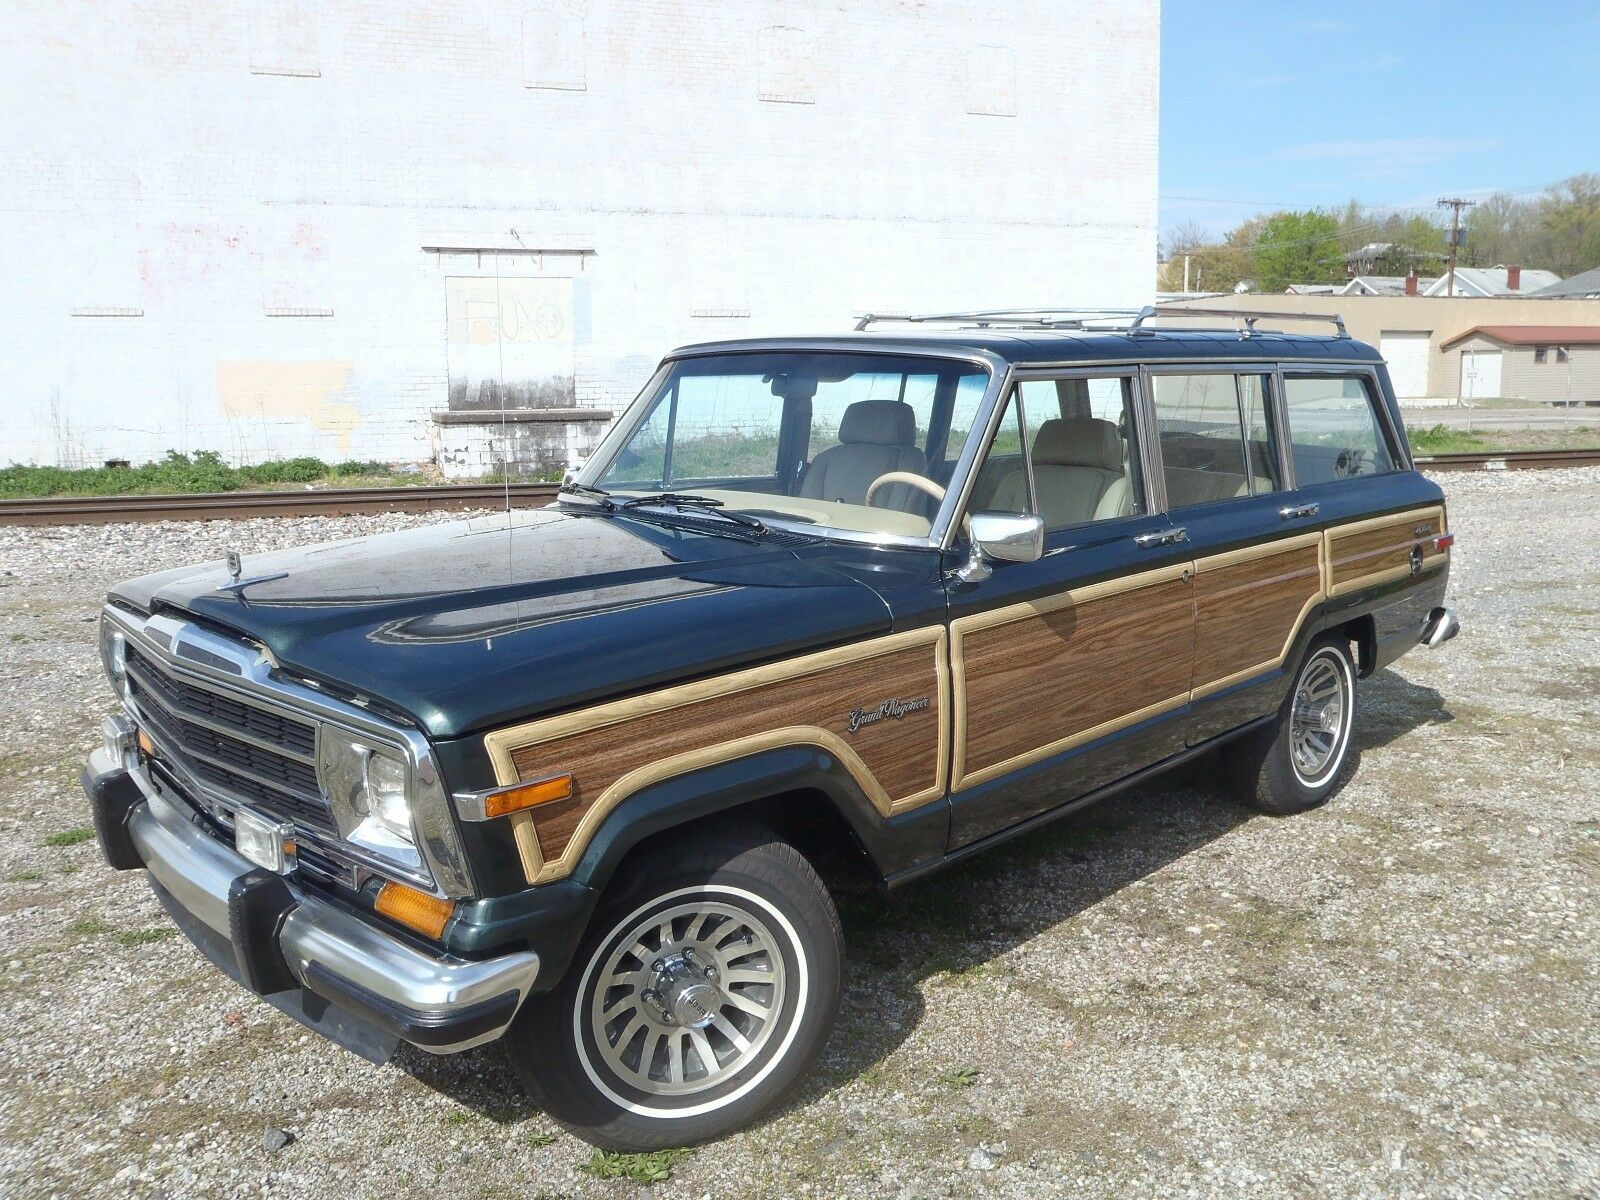 1991 Jeep Wagoneer LEATHER 1991 RARE HUNTER GREEN FINAL EDITION WAGONEER LOW MILES EXCELLENT CONDITION !